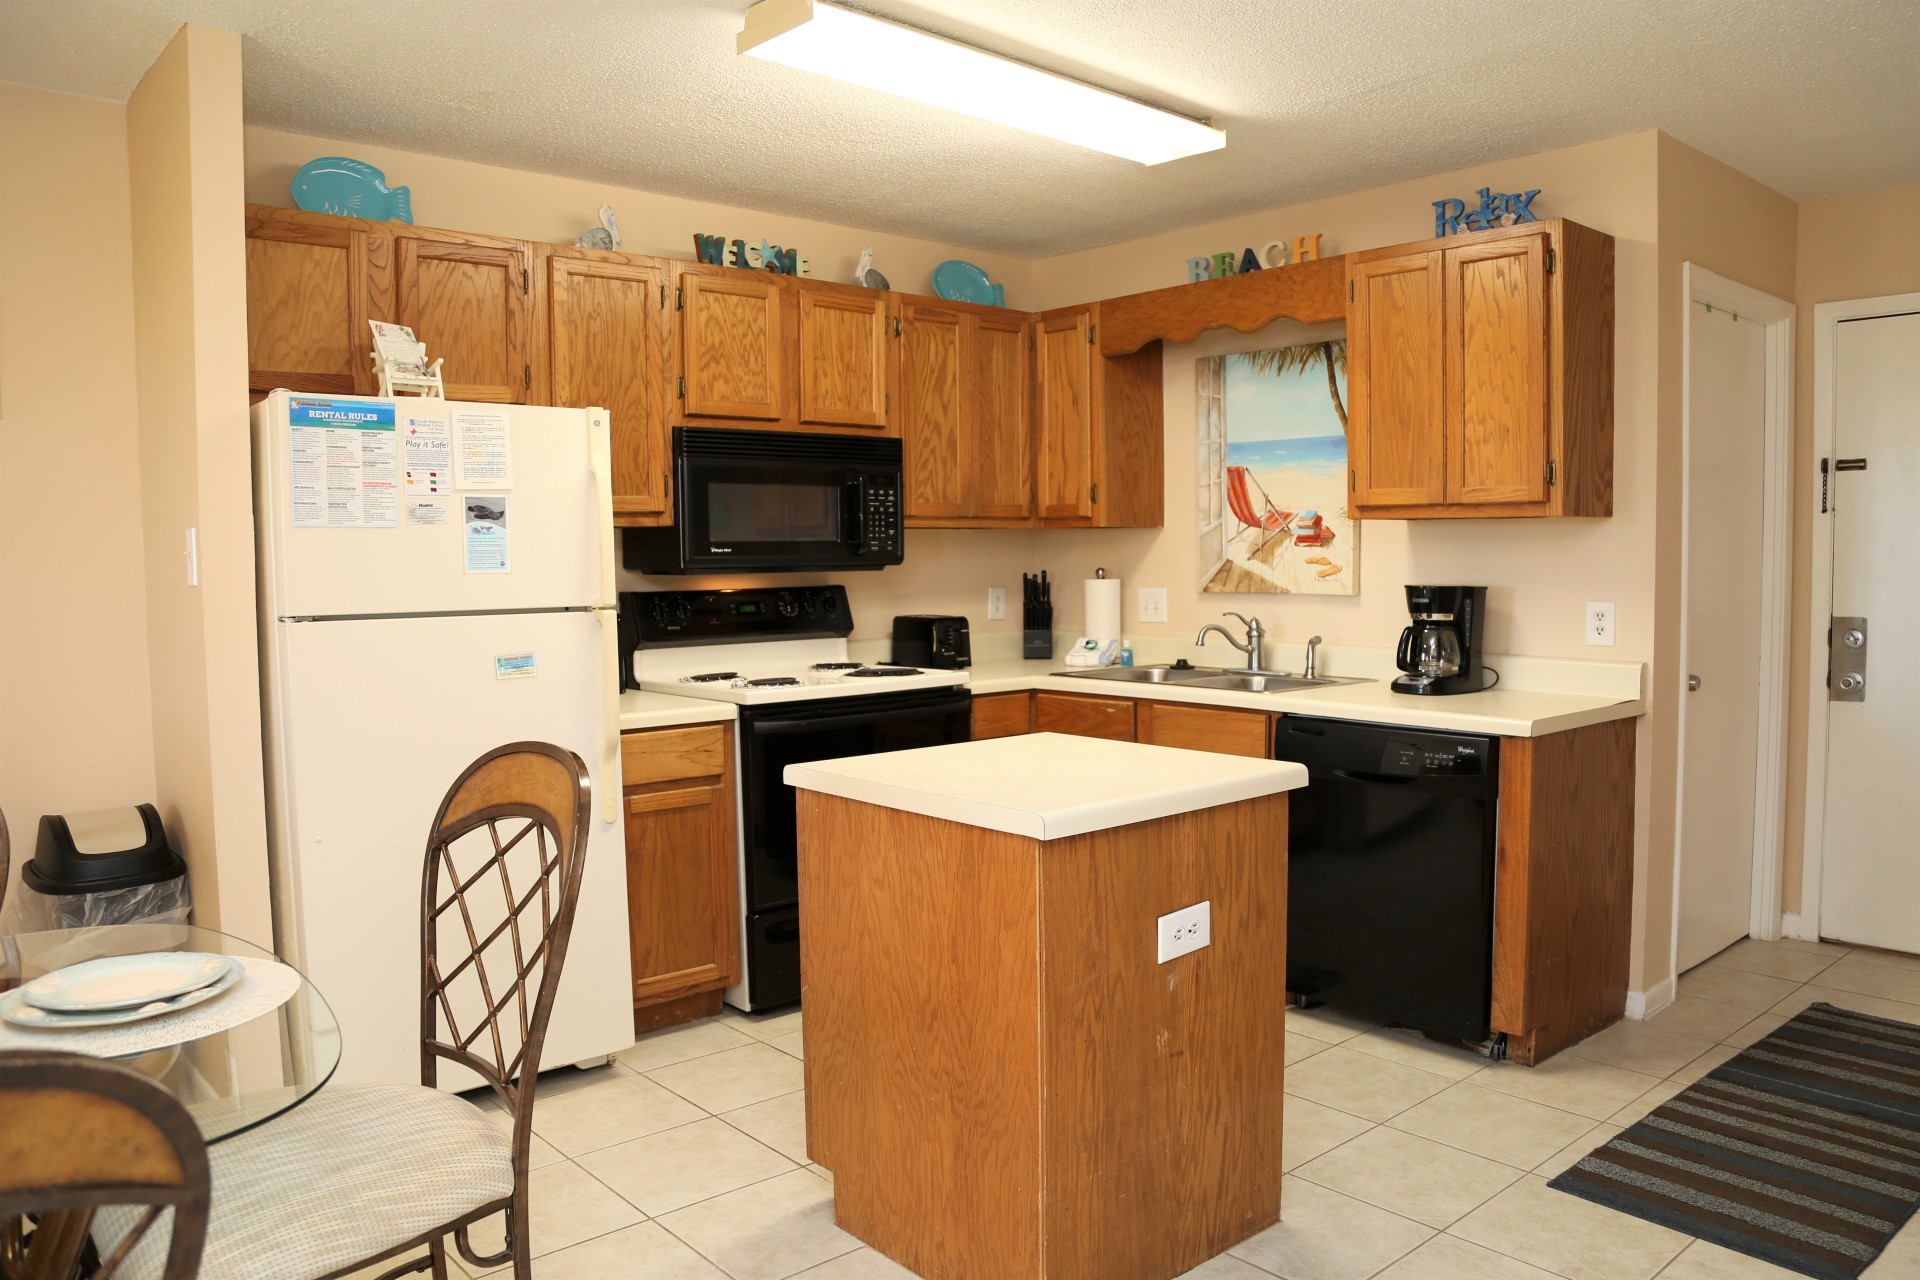 Fully equipped kitchen with island for extra counter space f